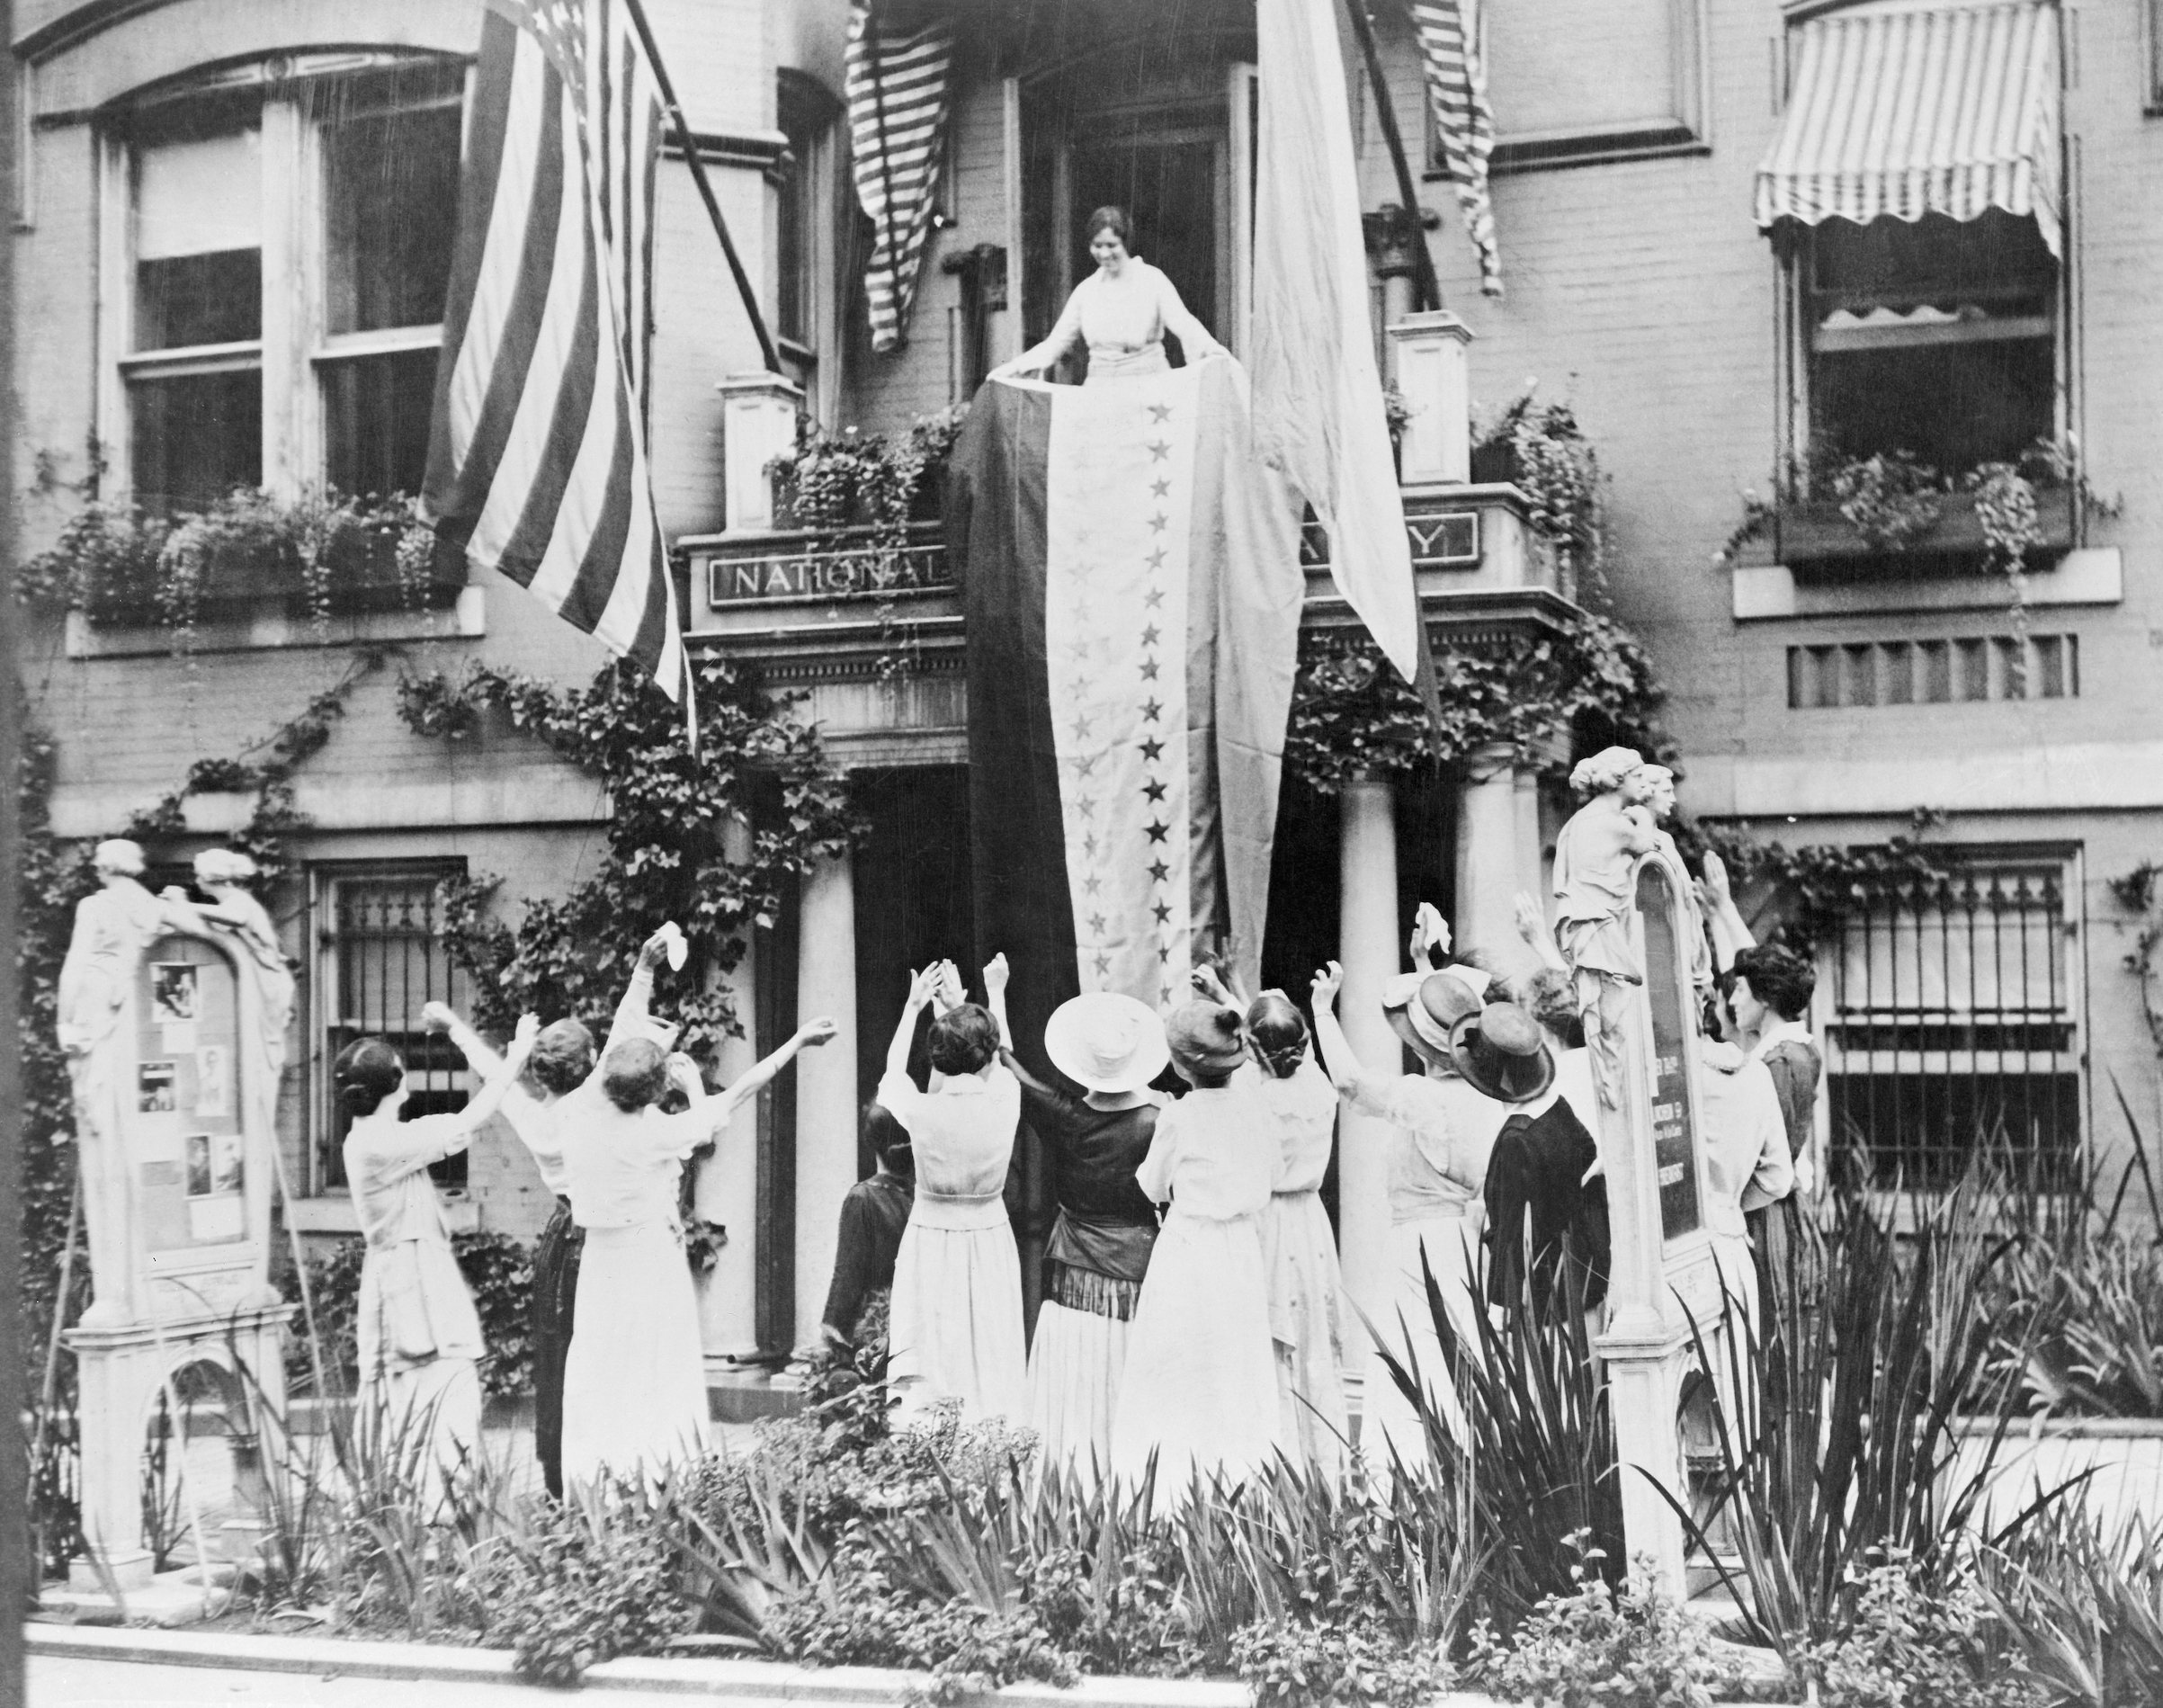 Alice Paul unfurls a banner from the balcony of the National Women's Party headquarters, celebrating the ratification of the 19 Amendment by Tennessee.